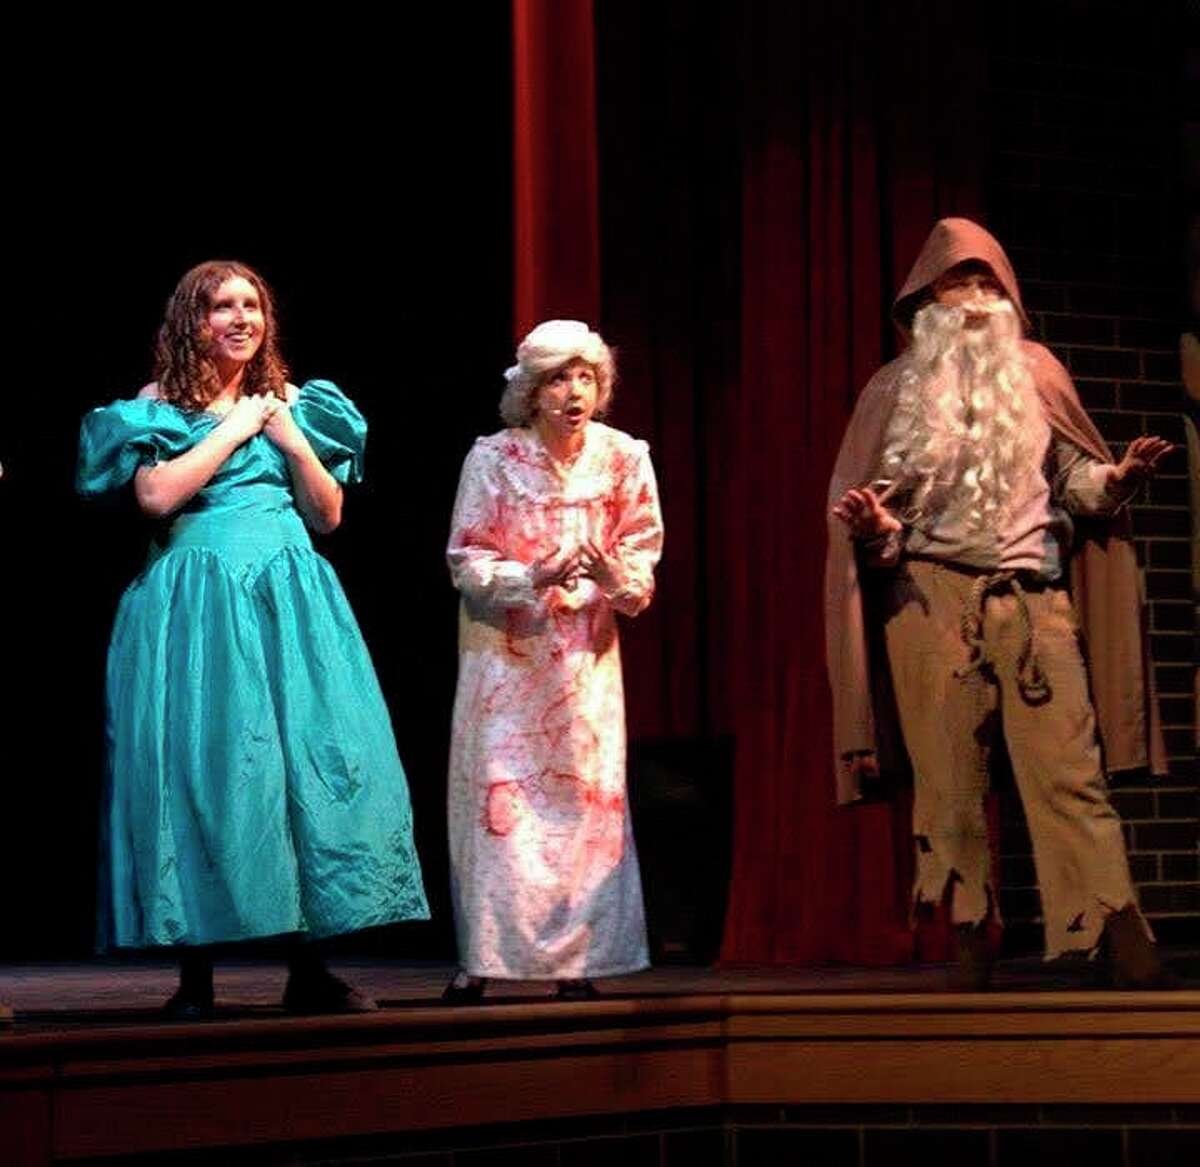 Annika Lipar (far left) performs in the STAGE-M production of